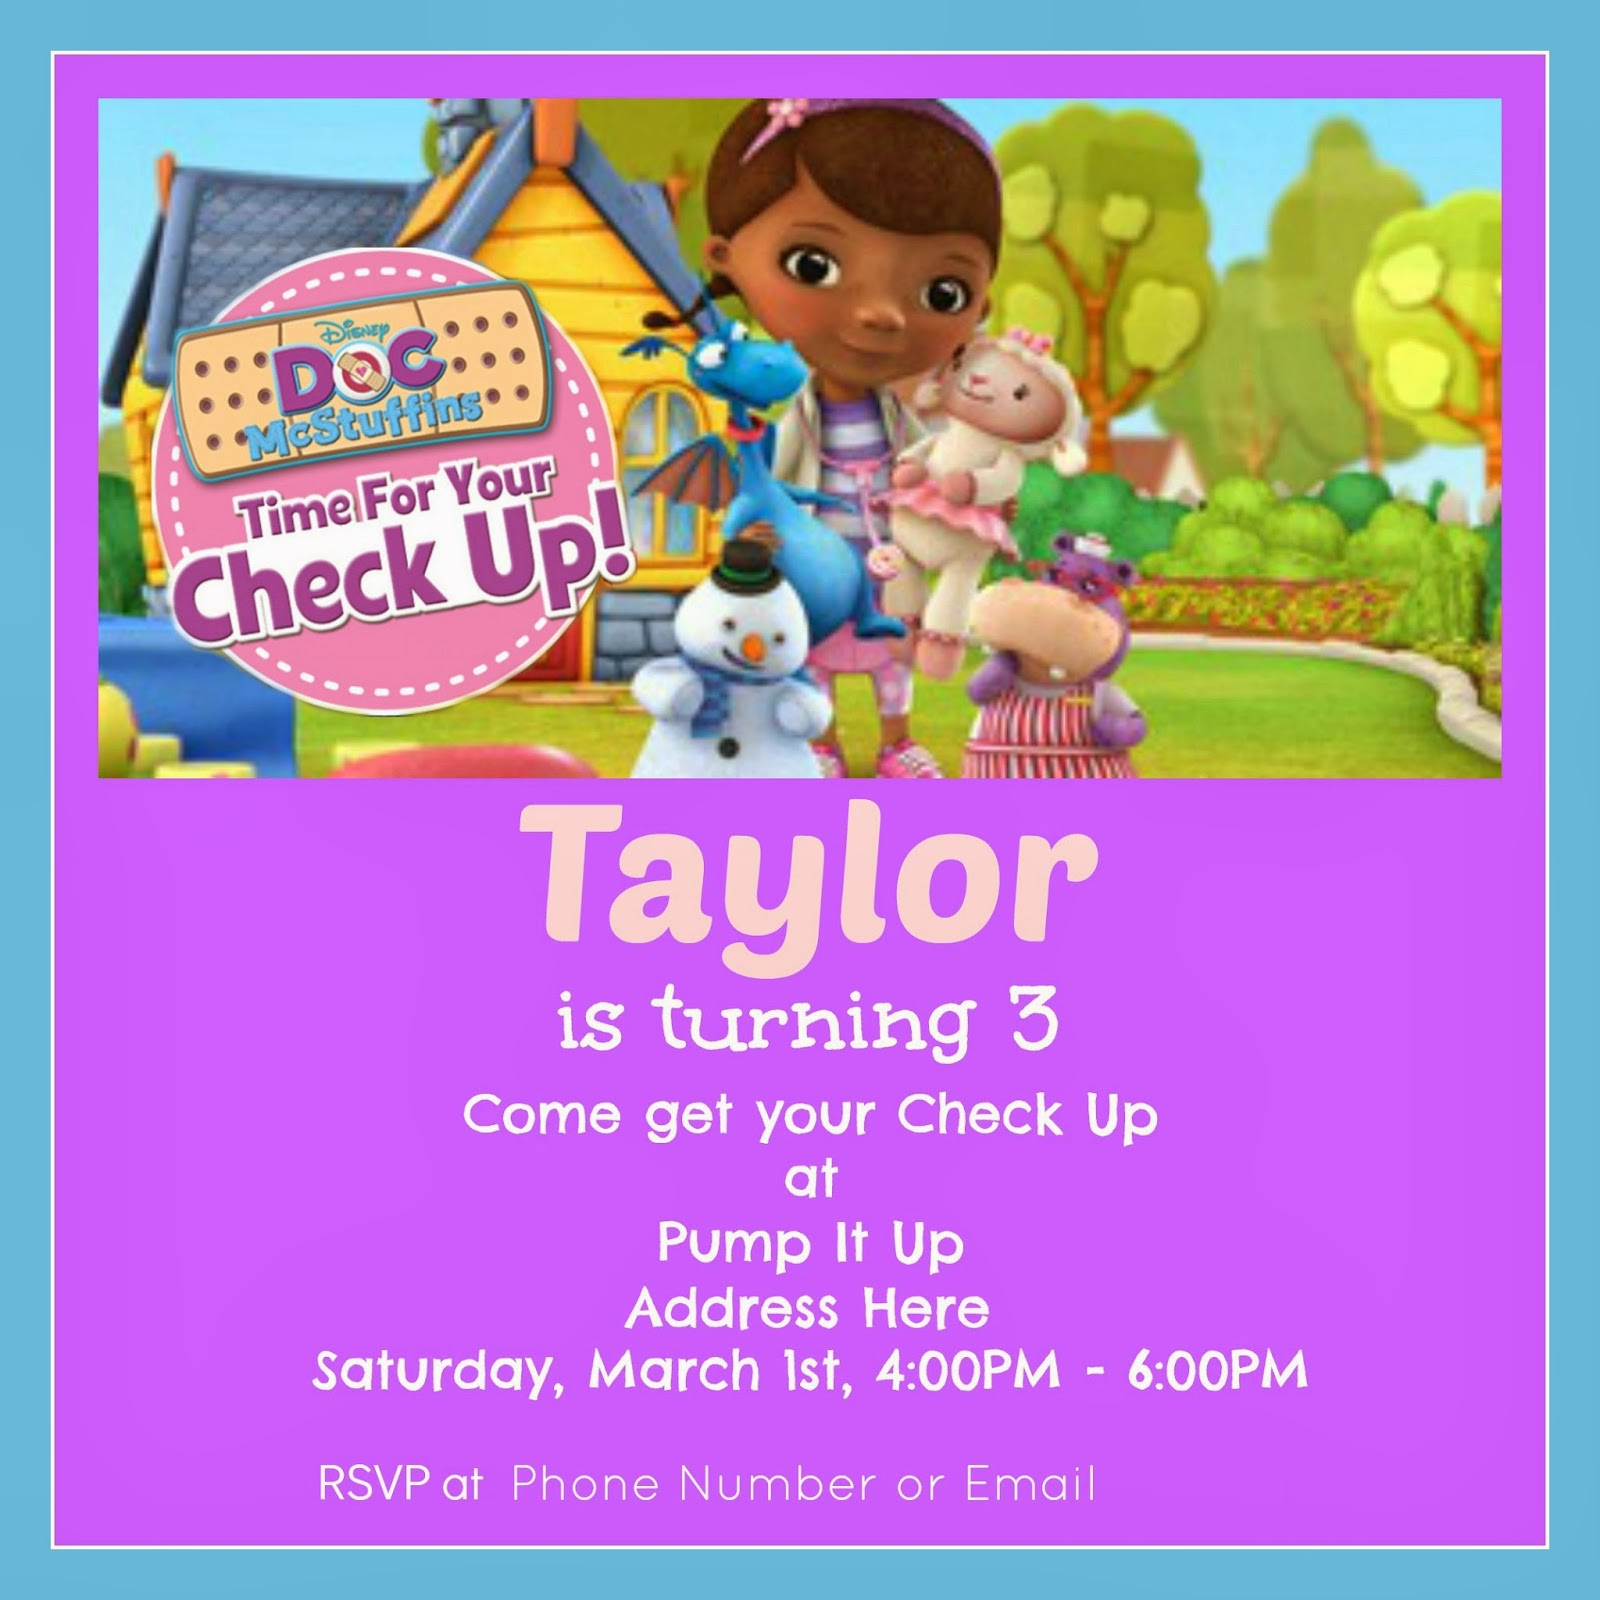 Doc mcstuffins birthday invitation tutorial mommy hot spot doc mcstuffins birthday invitation tutorial filmwisefo